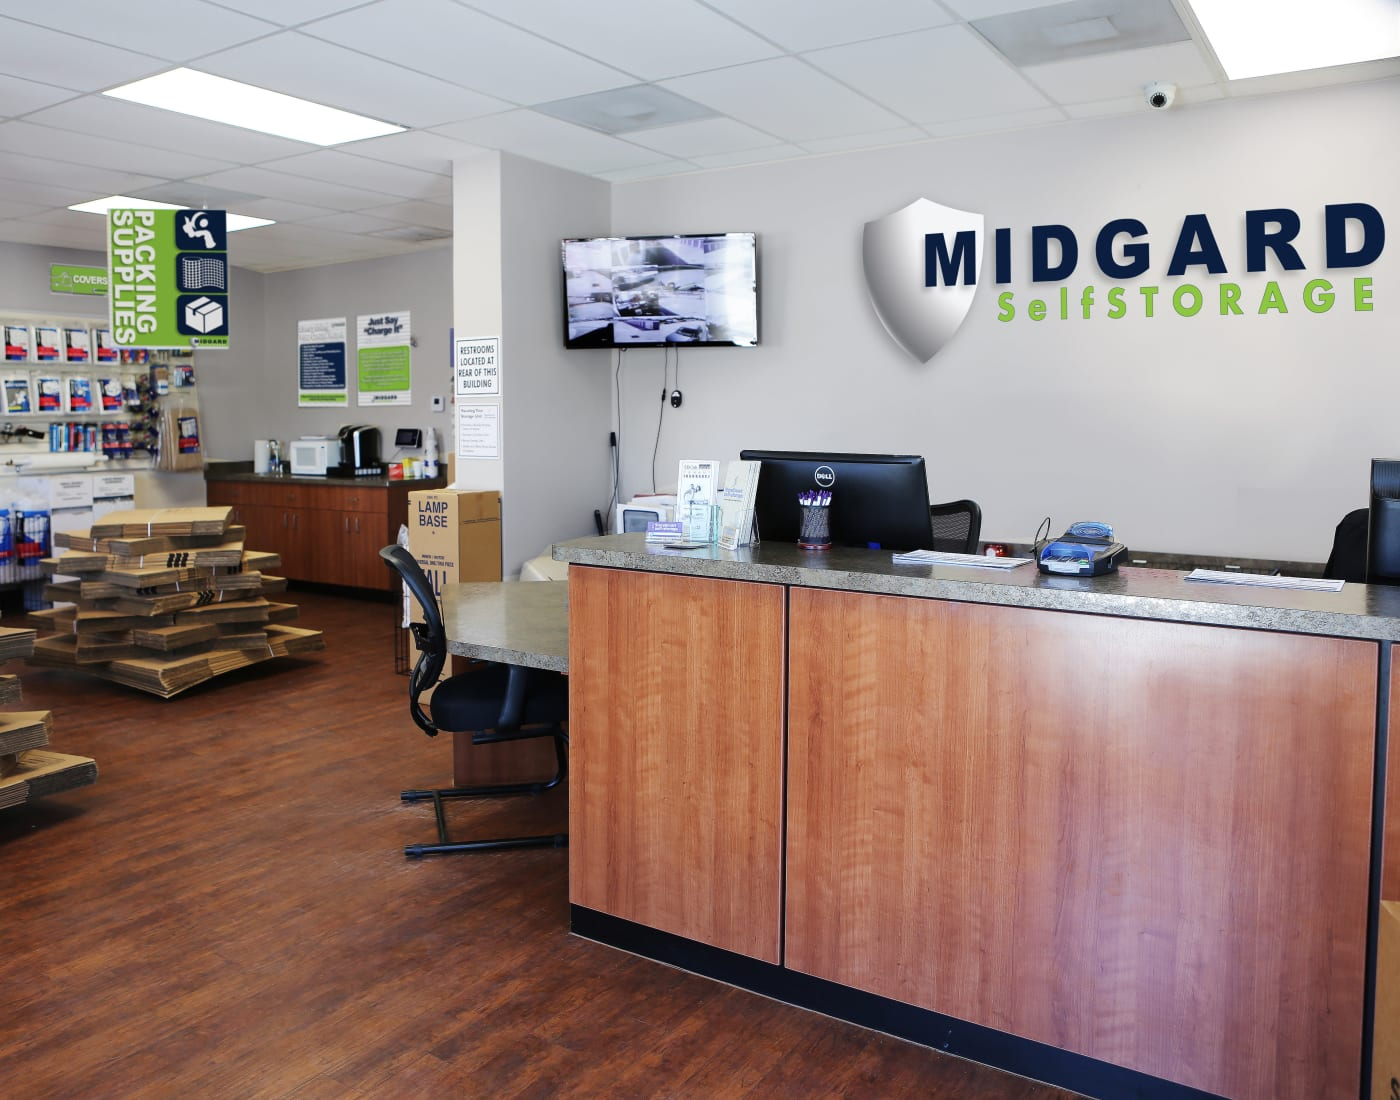 Packing and moving supplies for sale at Midgard Self Storage in Murfreesboro, Tennessee